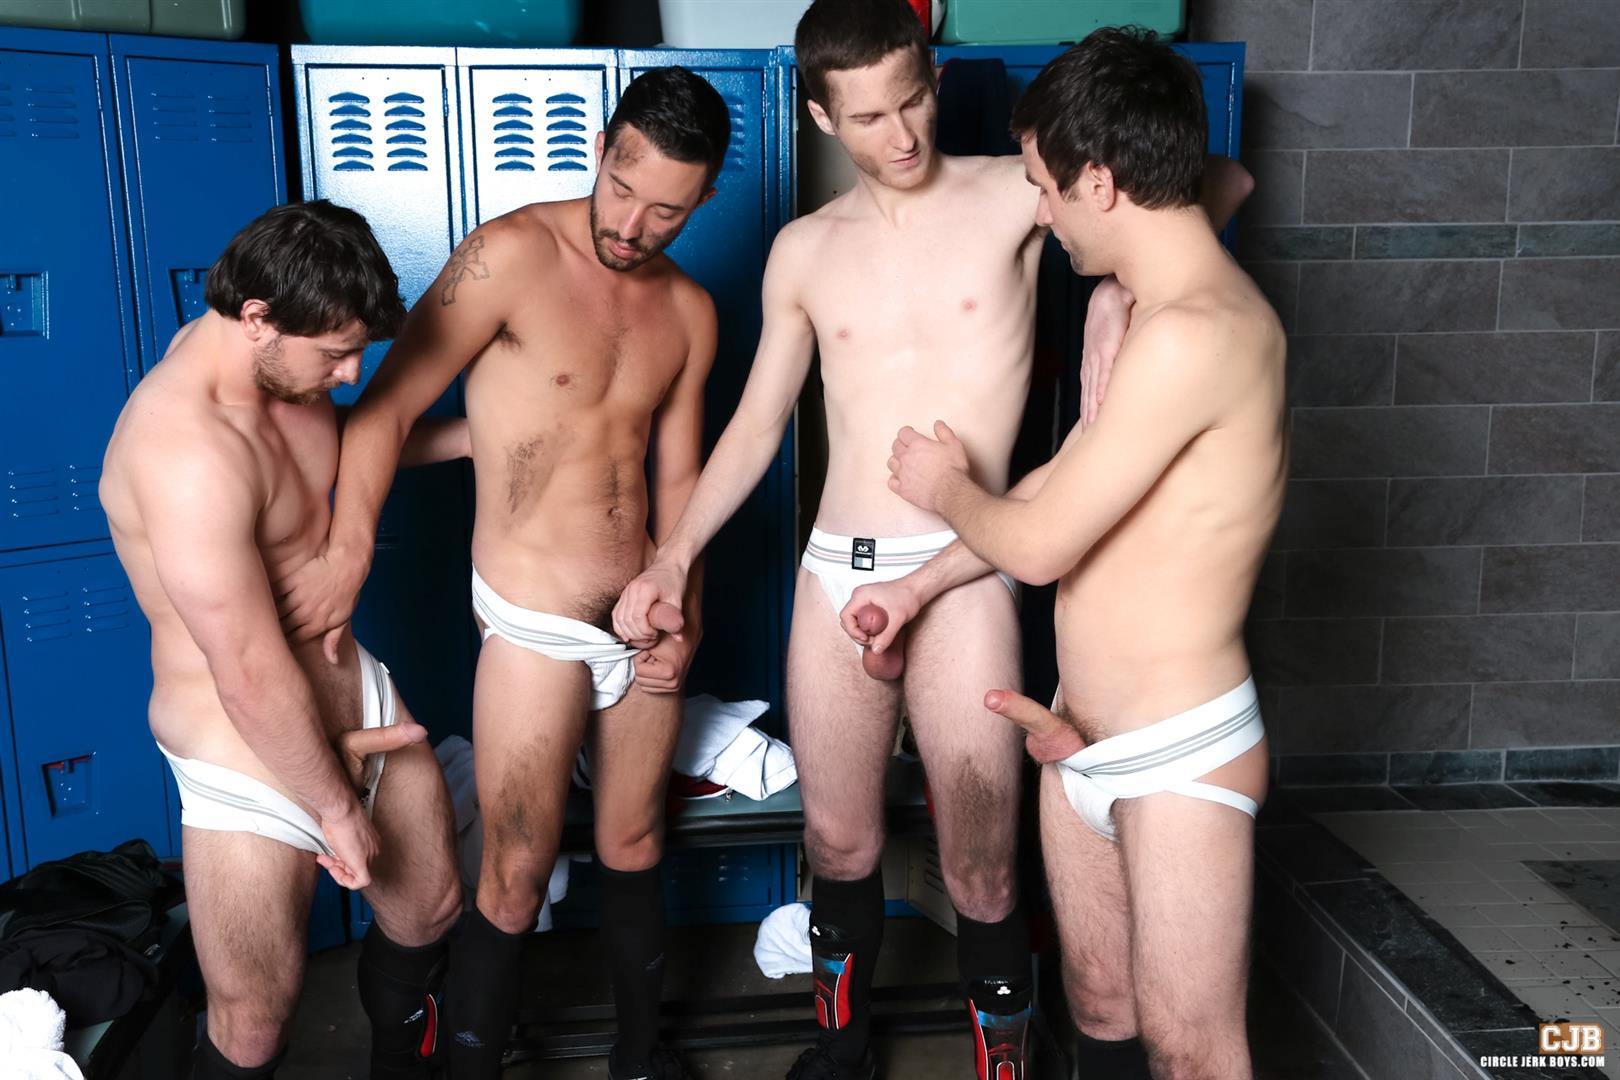 Circle Jerk Boys Andrew Collins and Isaac Hardy and Josh Pierce and Scott Harbor Soccer Guys Sucking Cock Amateur Gay Porn 04 After the Game, Soccer Plays Sucking Cock In The Locker Room